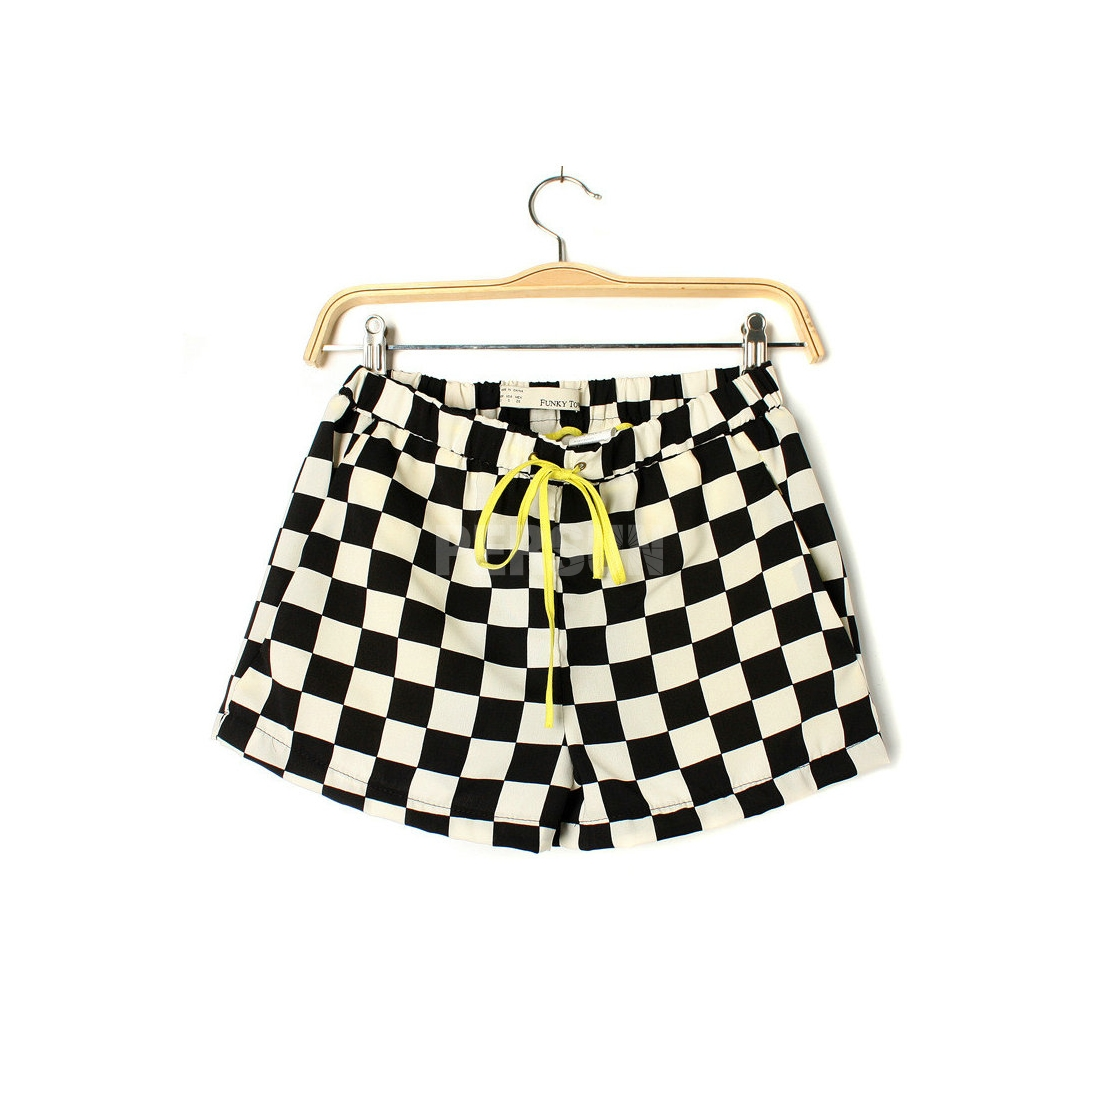 Checkered Mint Cotton Shorts [FJCE0020]- US$ 41.99 - PersunMall.com